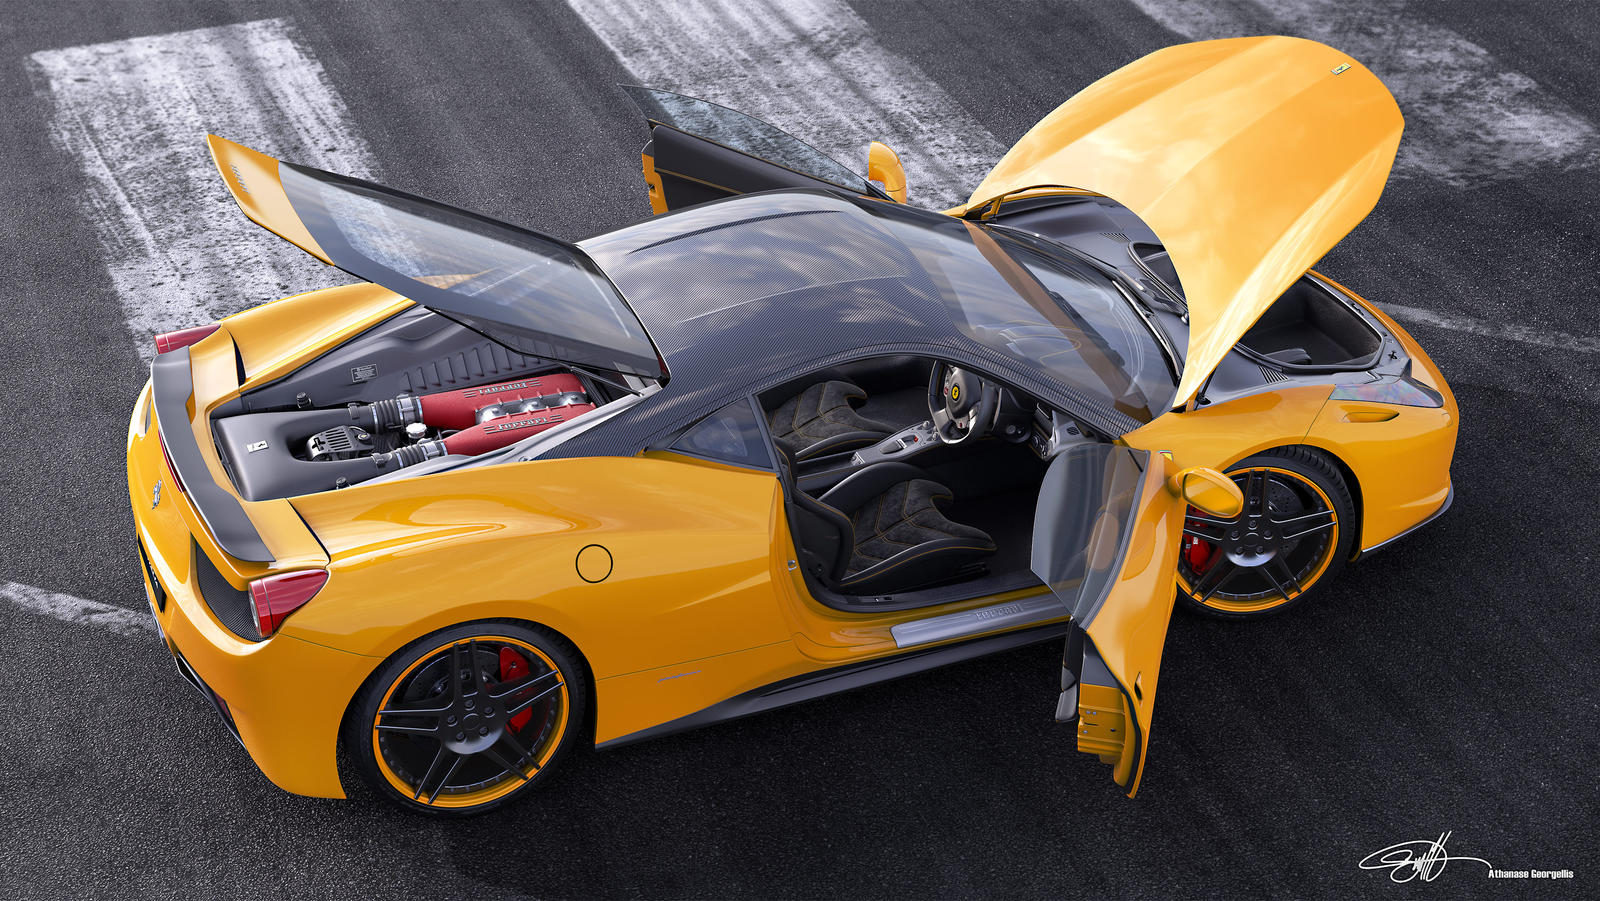 Ferrari_458italia_NovitecRosso_Runway_Yellow by NasG85